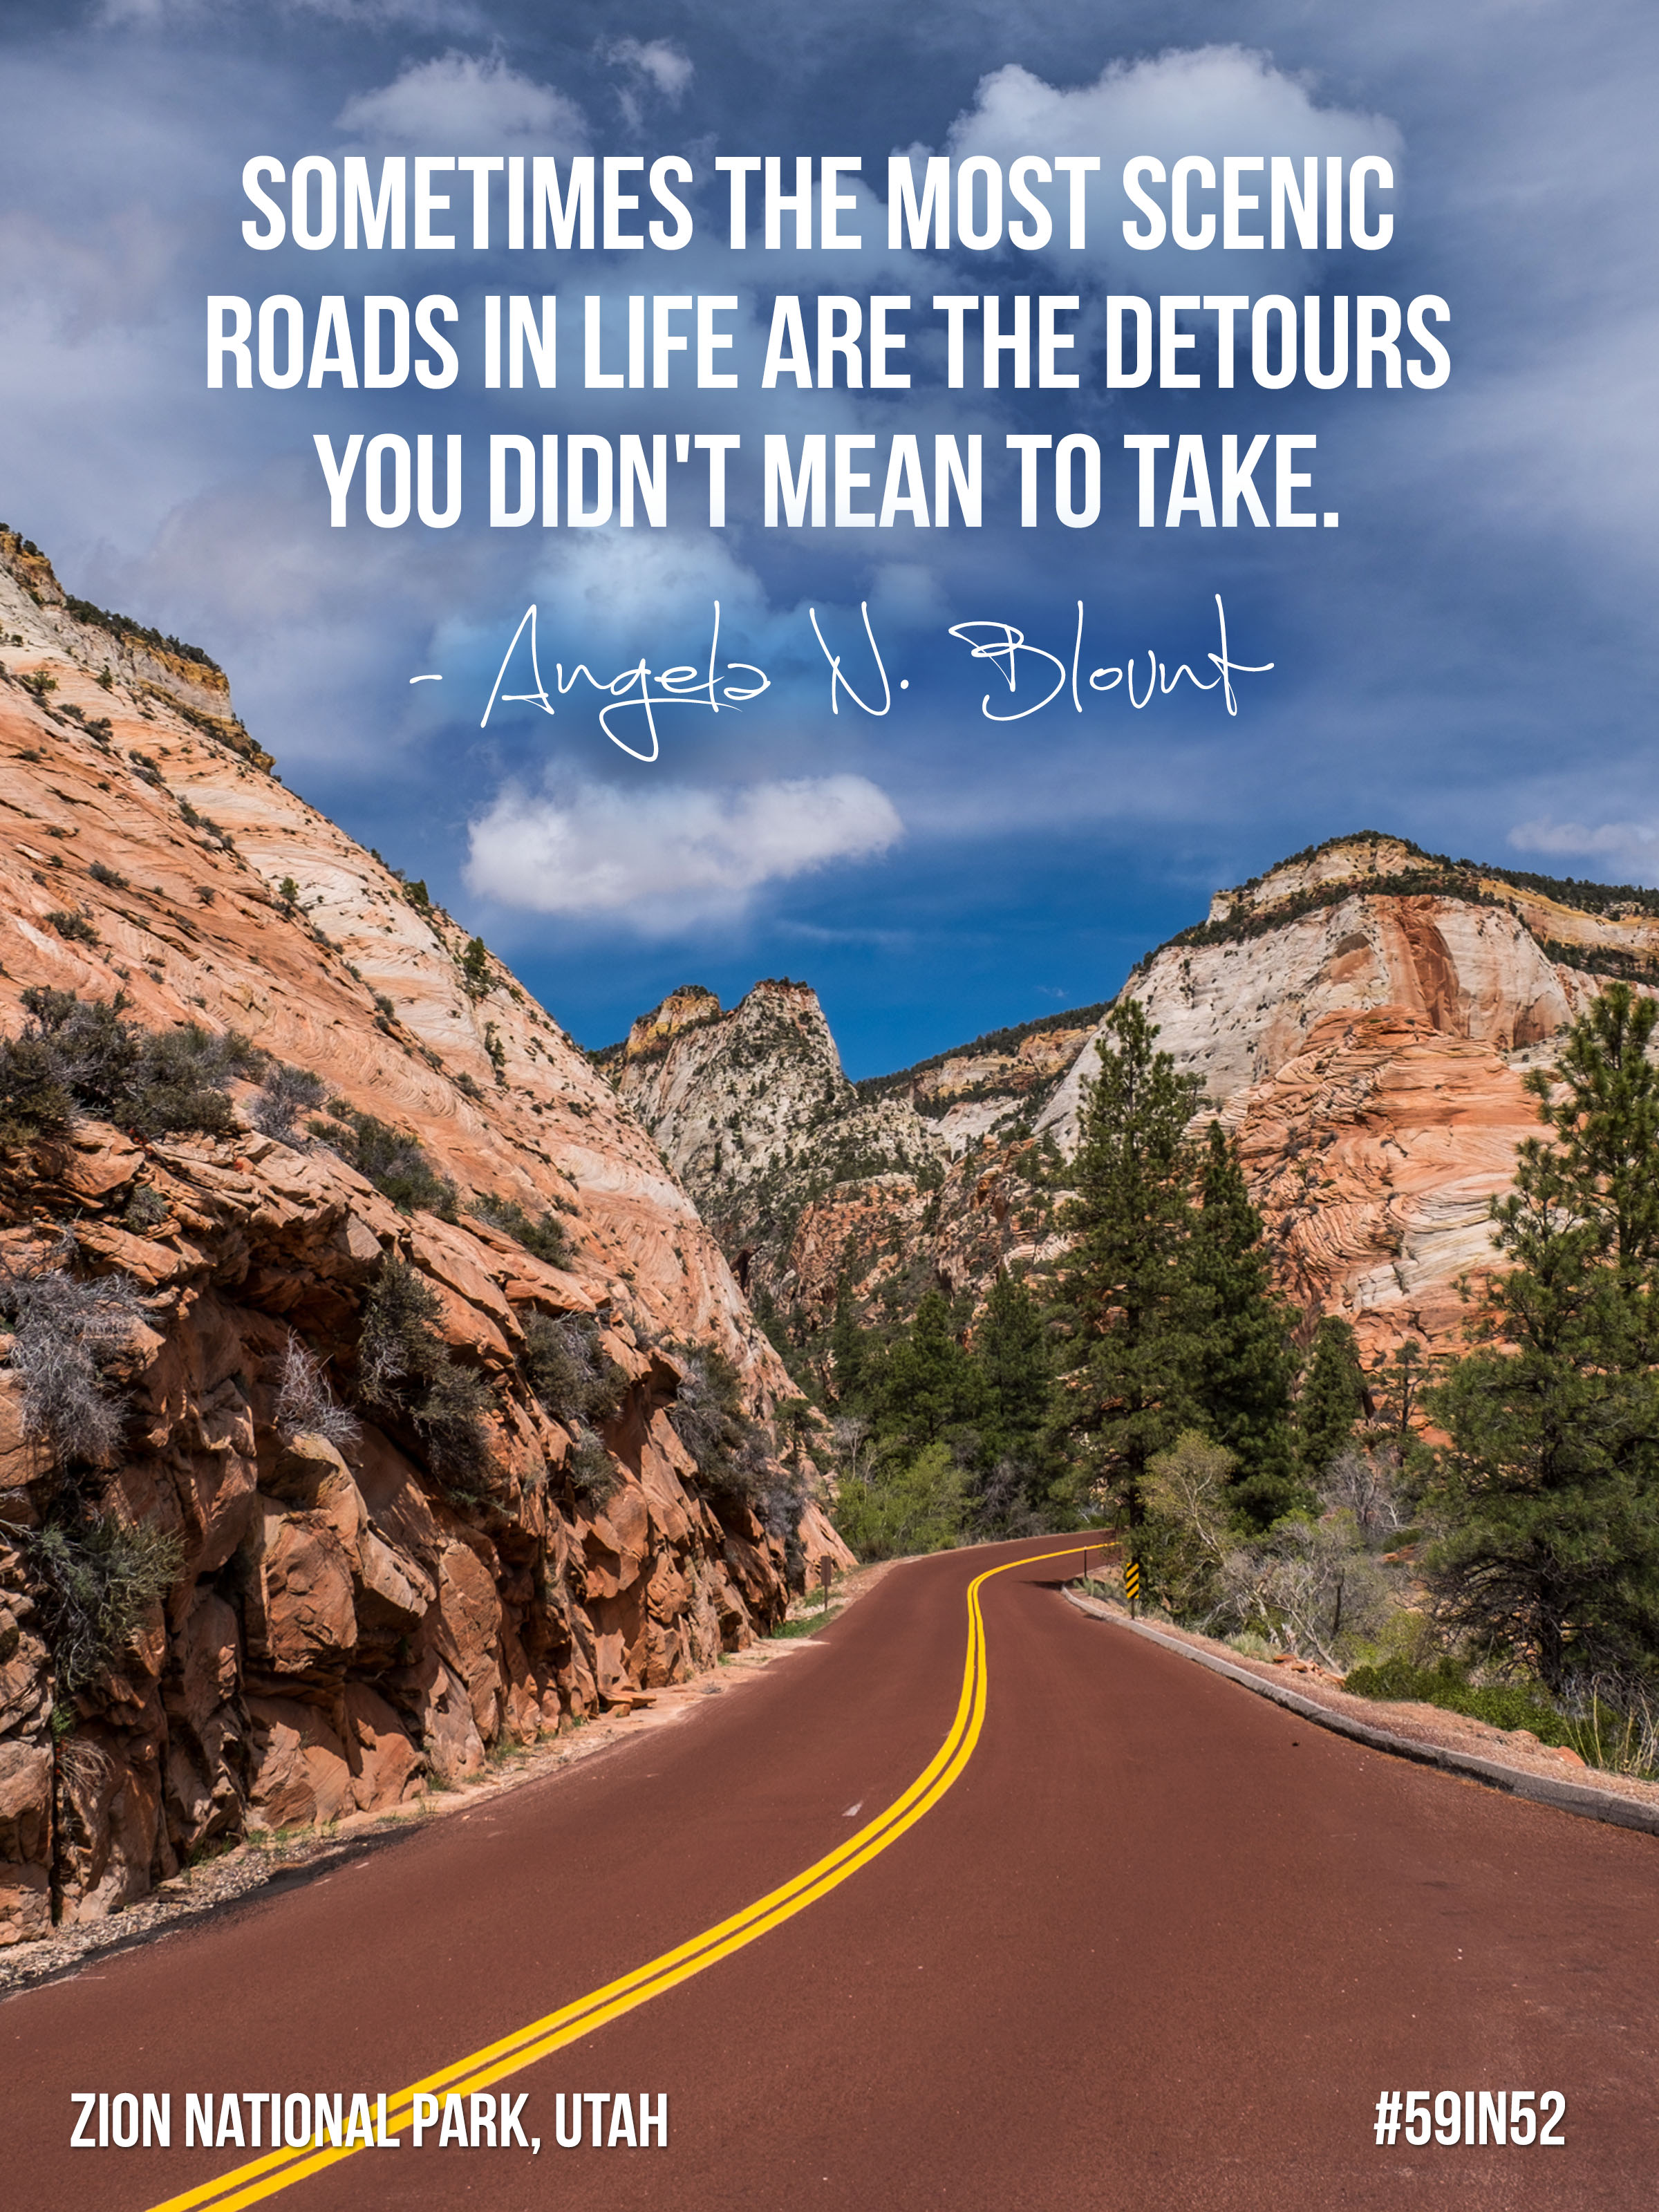 'Sometimes the most scenic roads in life are the detours you didn't mean to take.' - Angela N. Blount